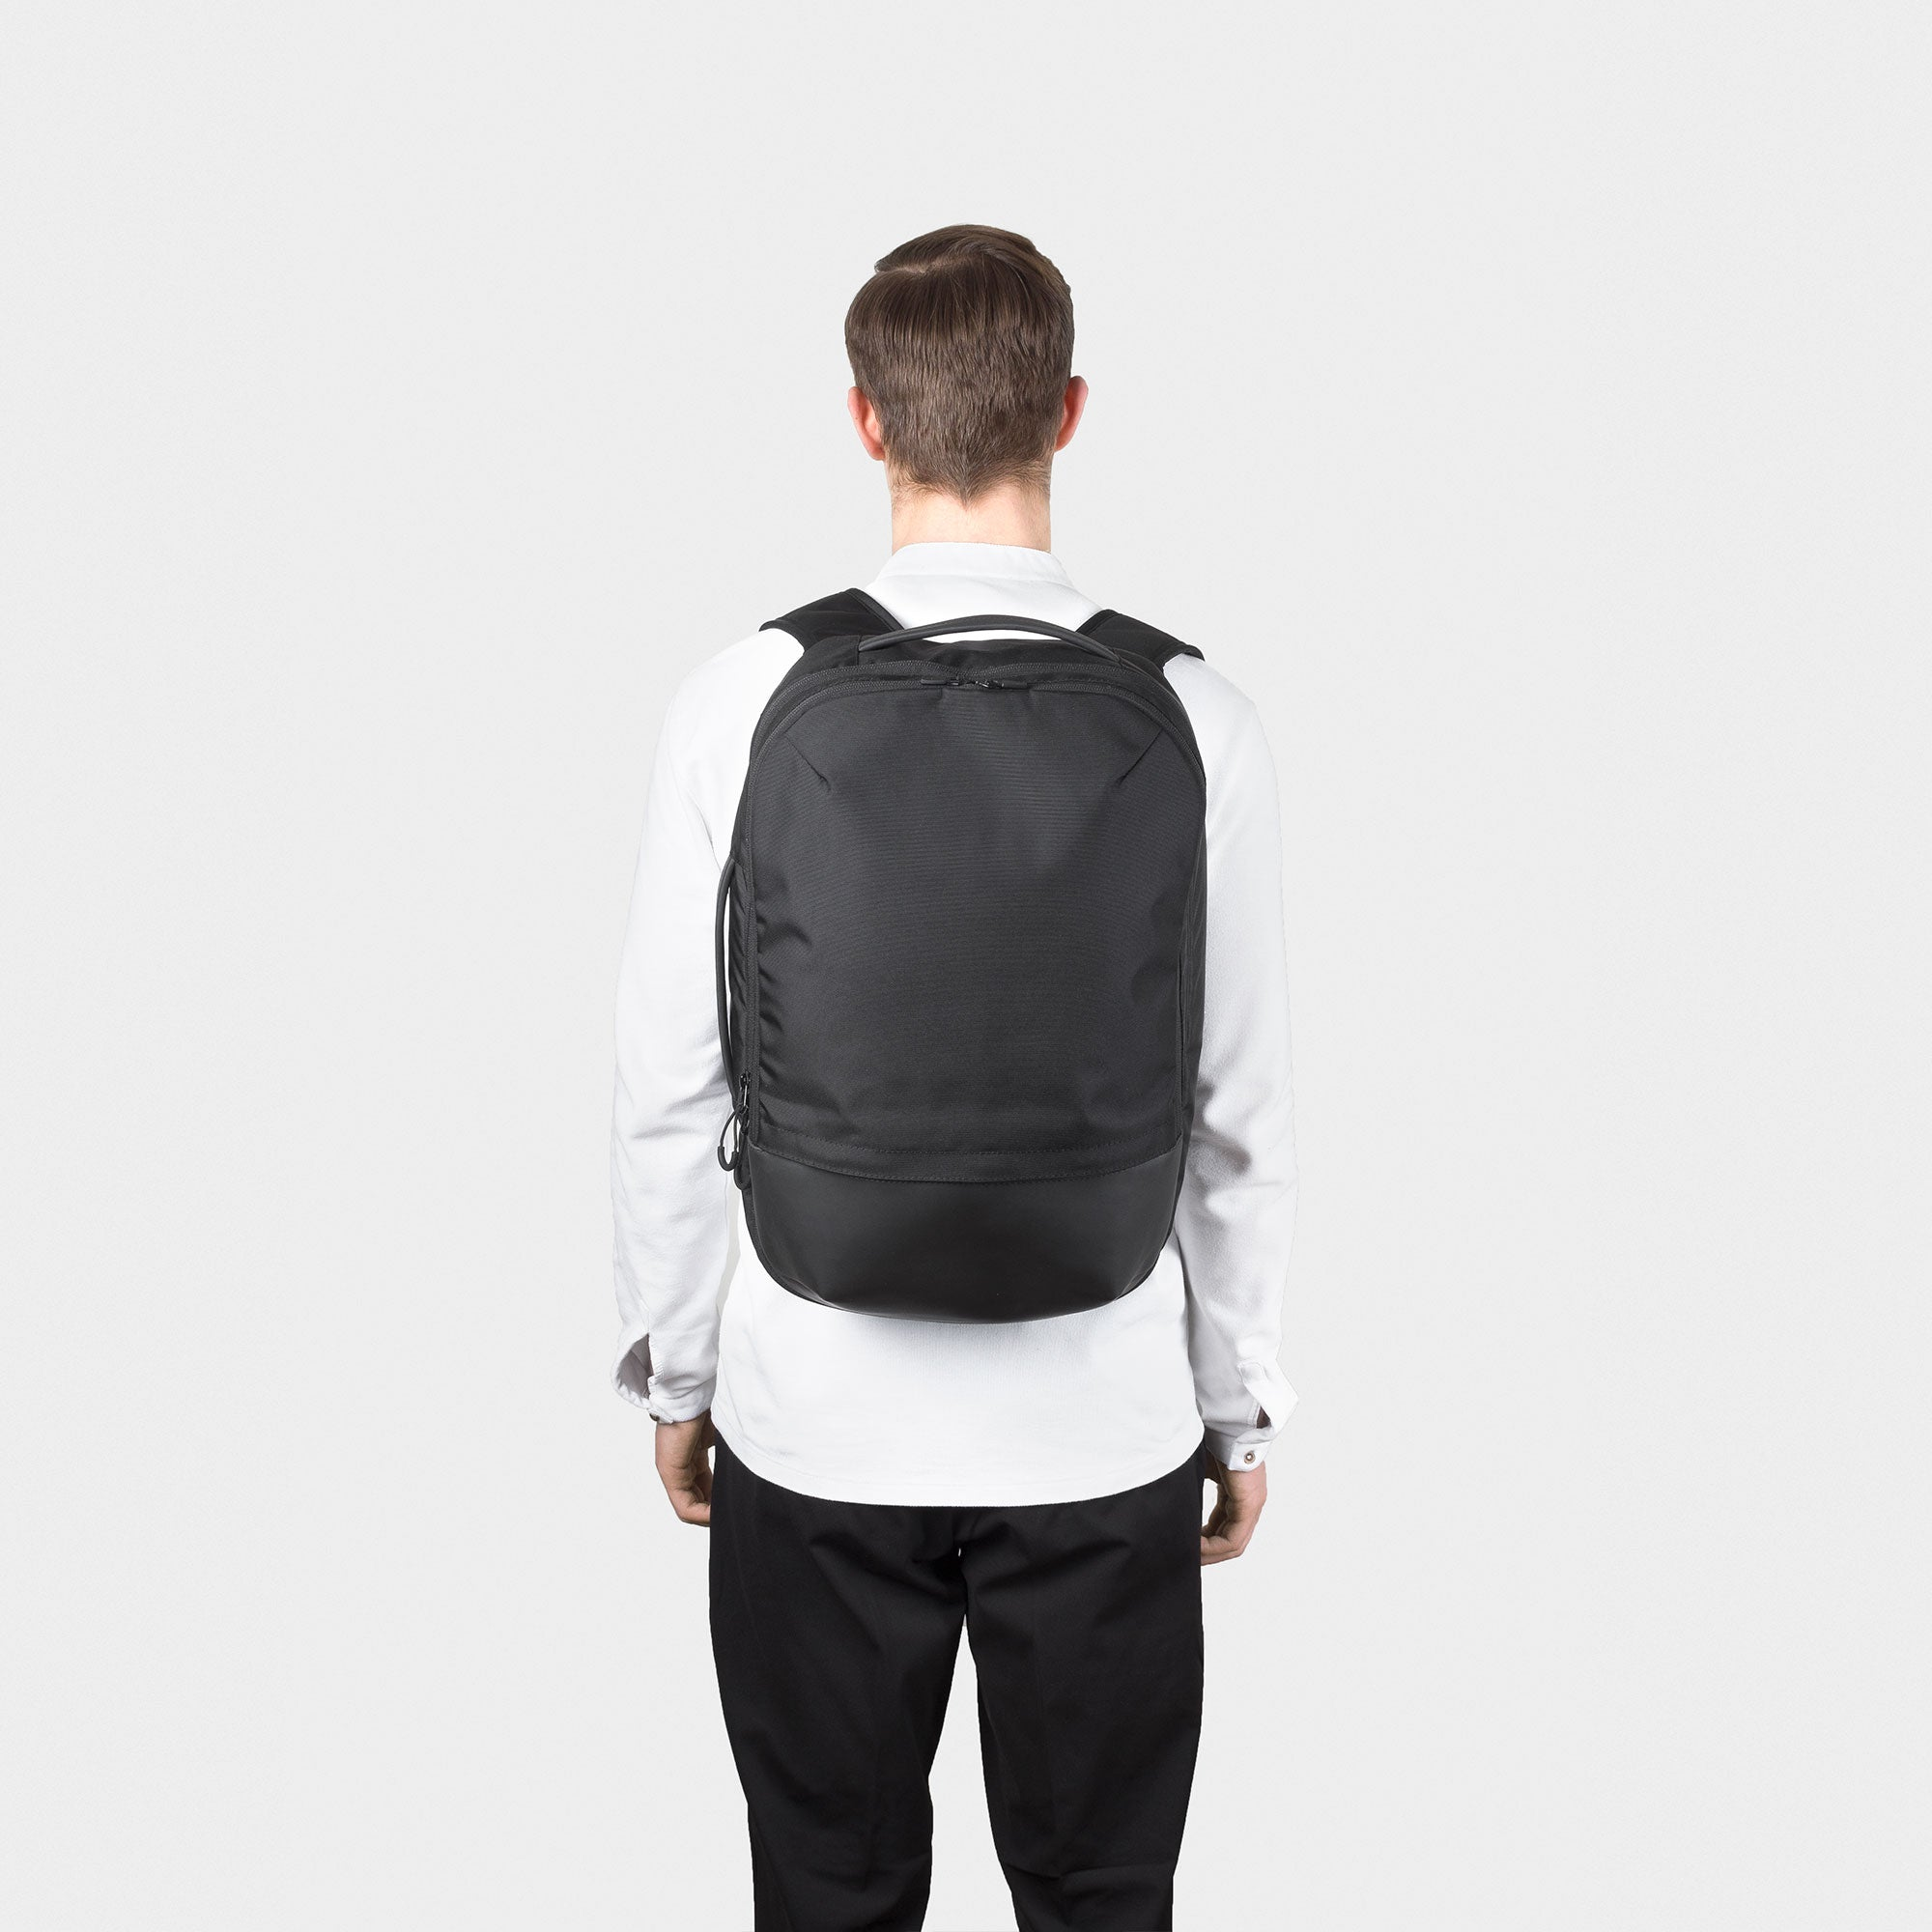 ... Opposethis Invisible Carry-on Backpack | Travel Backpack | Travel Pack  | Clamshell Backpack ...